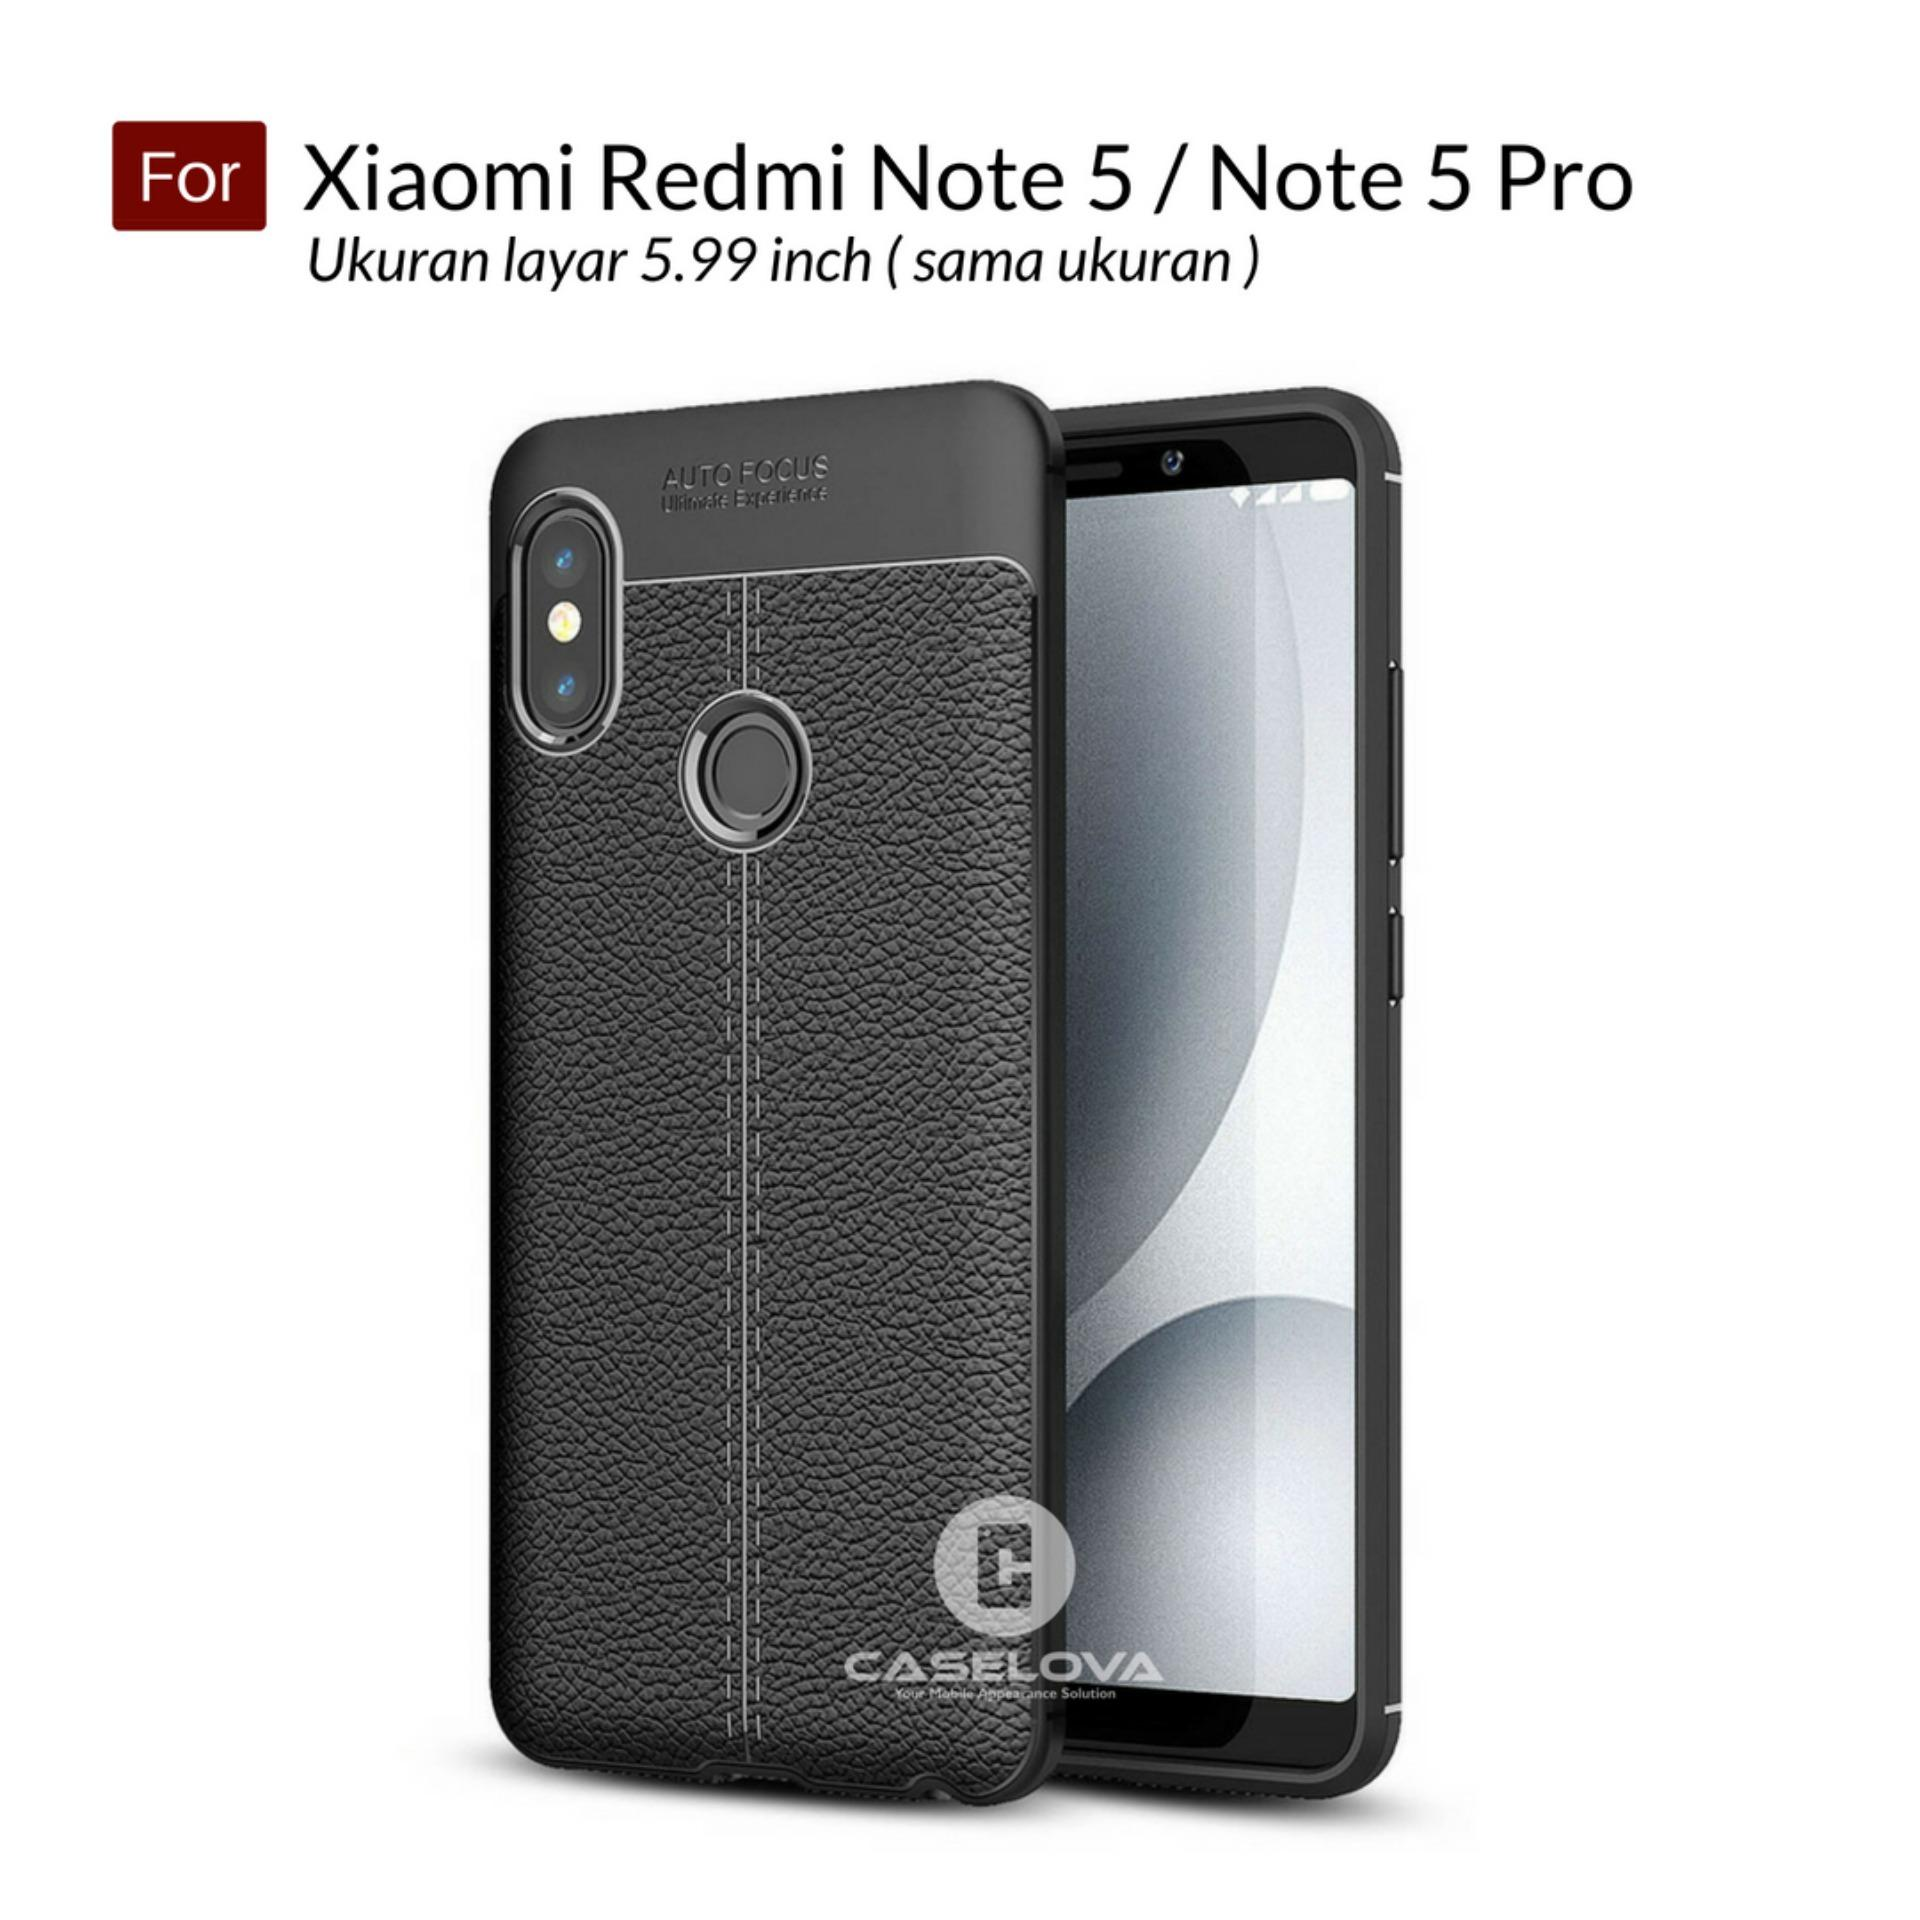 Caselova Ultimate Experience Shockproof Premium Quality Hybrid Case For Xiaomi Redmi Note 5 / Note 5 Pro Layar 5.99 inch ( sama ukuran ) - Black